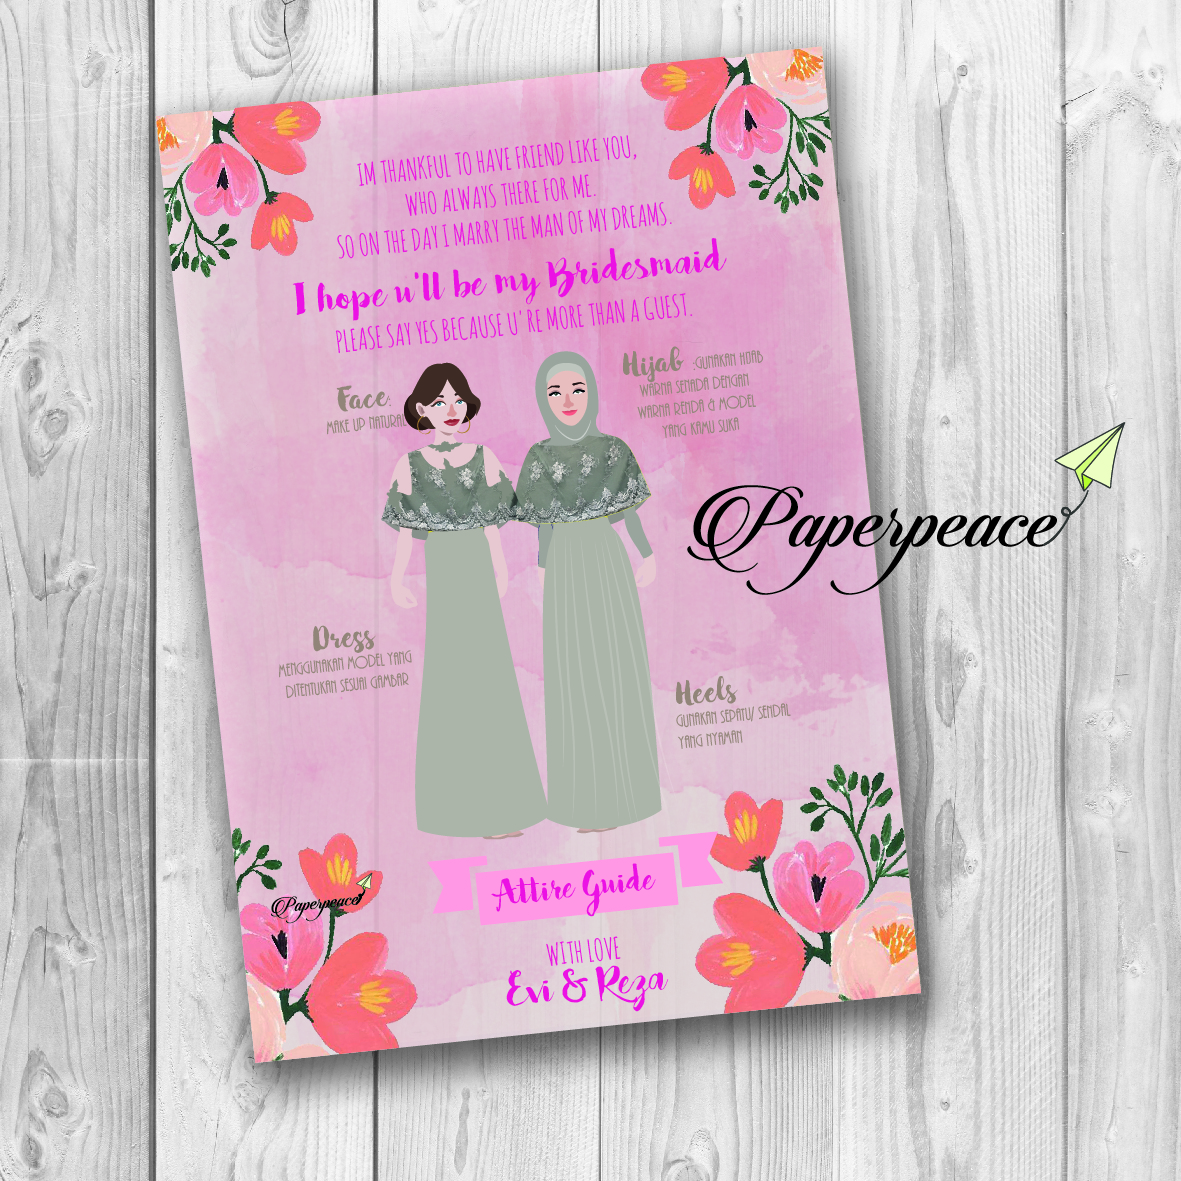 Paperpeace Bridesmaid Attire Guide For Ms Evi